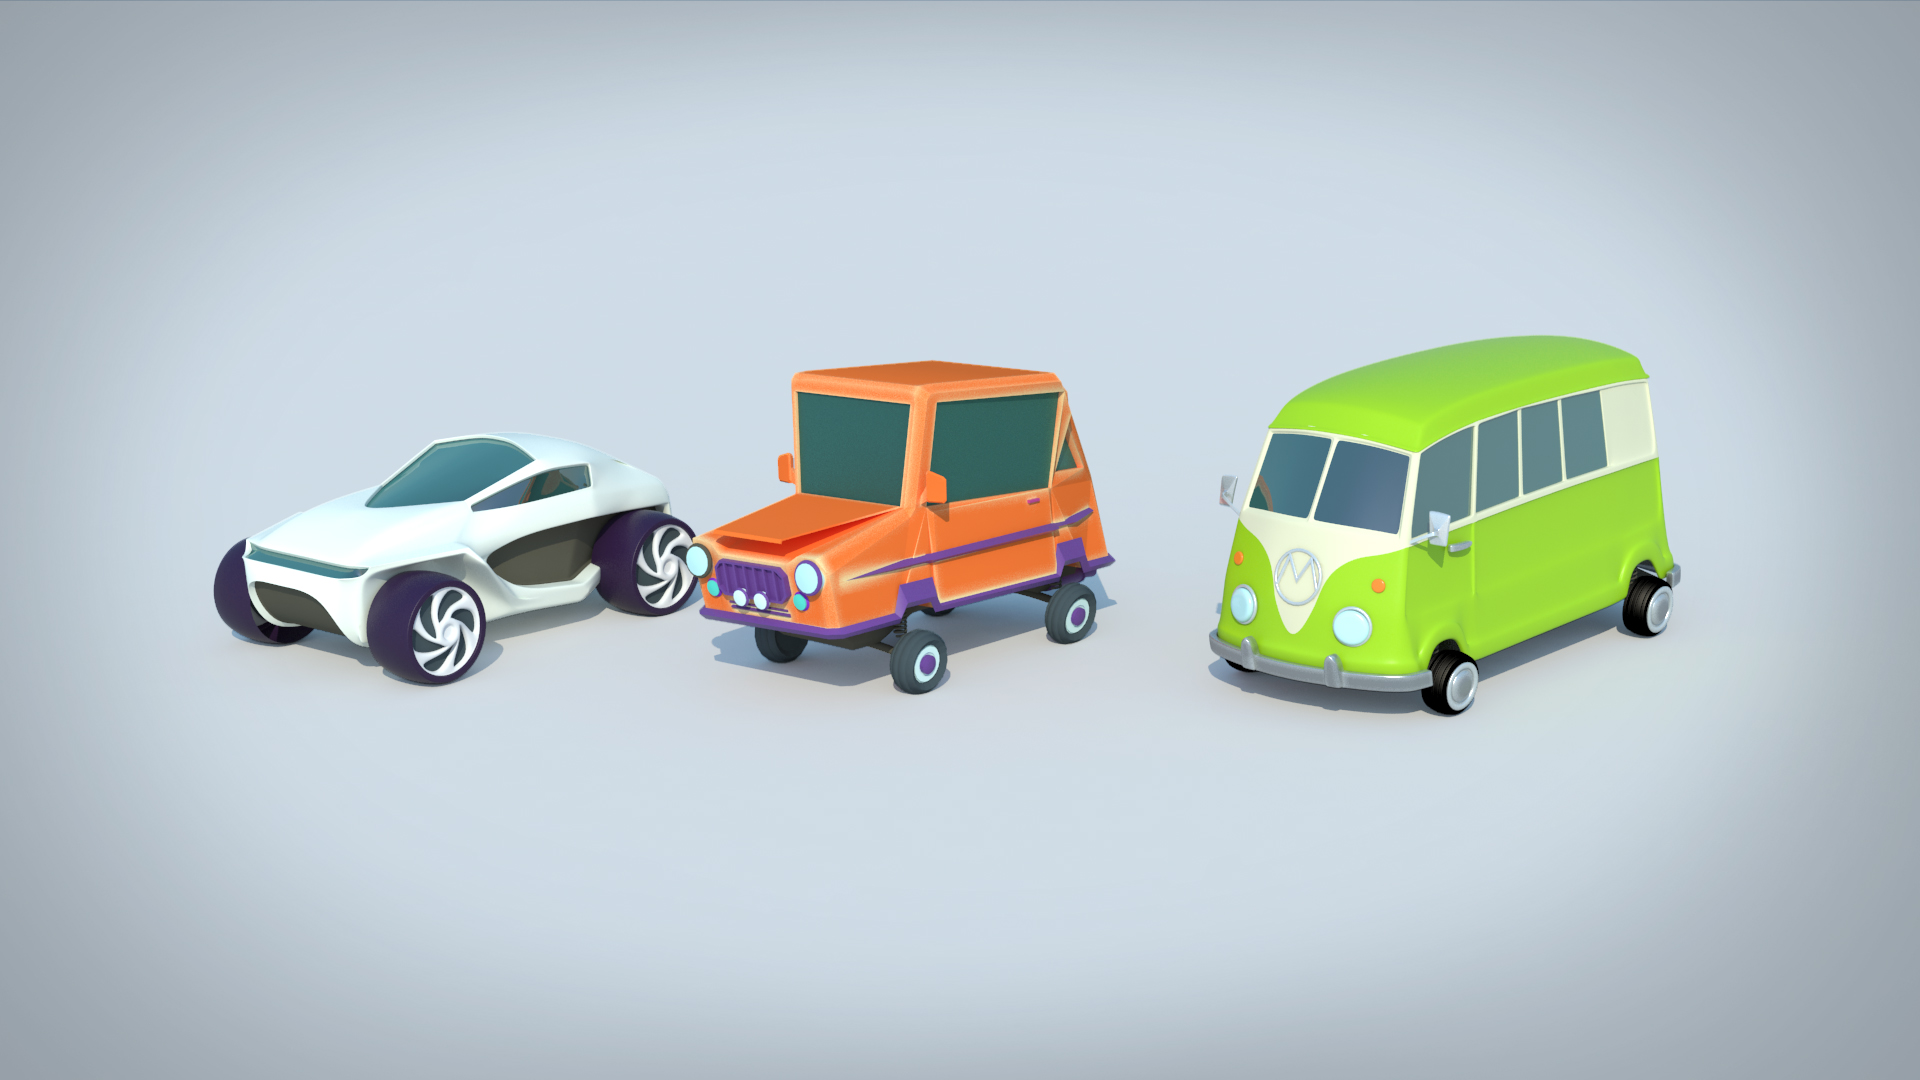 GALERIE-Dripmoon-Studio 3D-Tours-Motion design - Voeux Meccoli - Low poly - isometric video 5